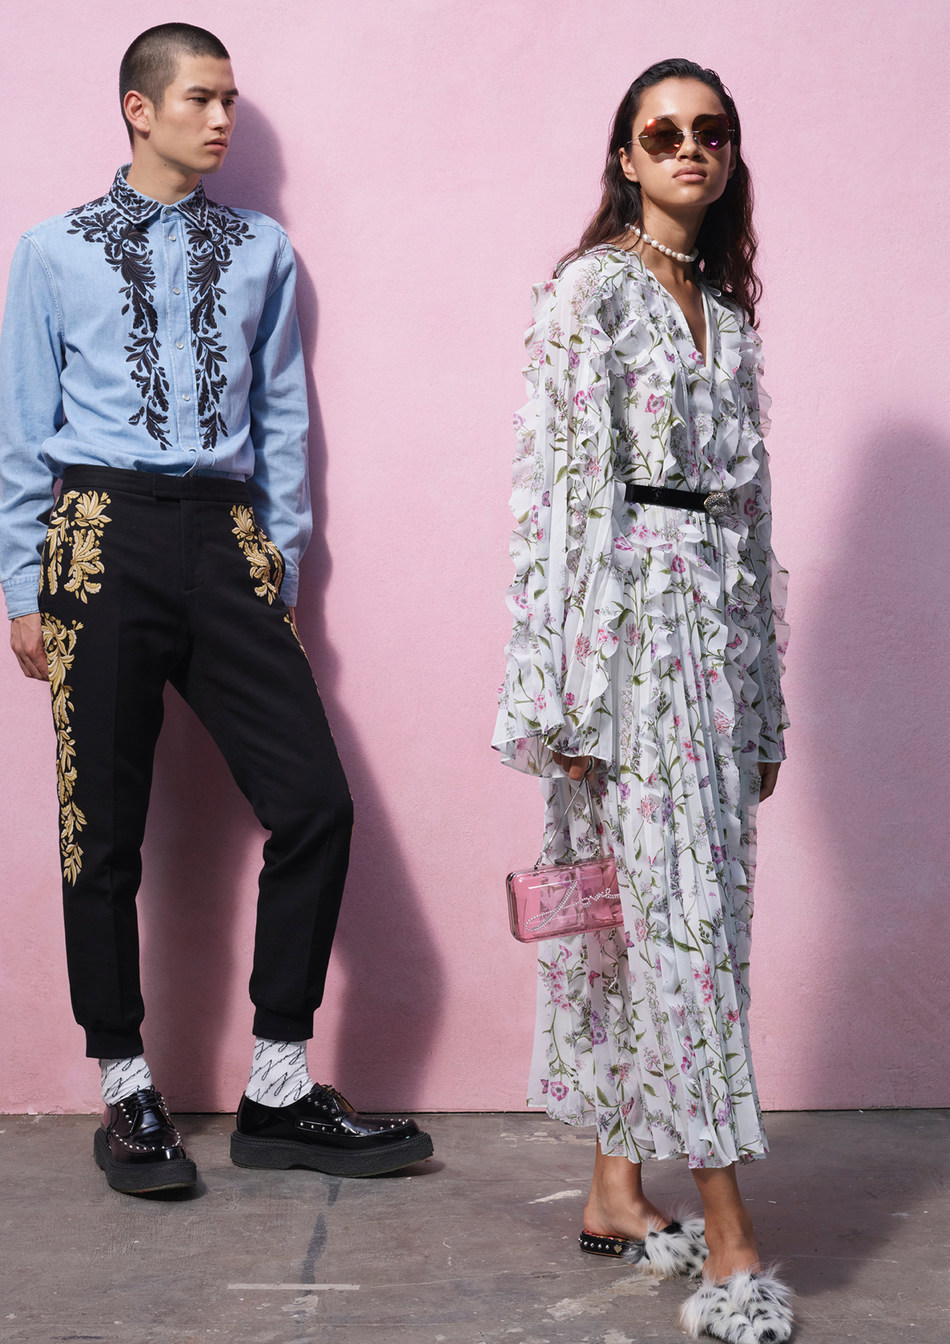 First Look At The Full Giambattista Valli X H&M Collection